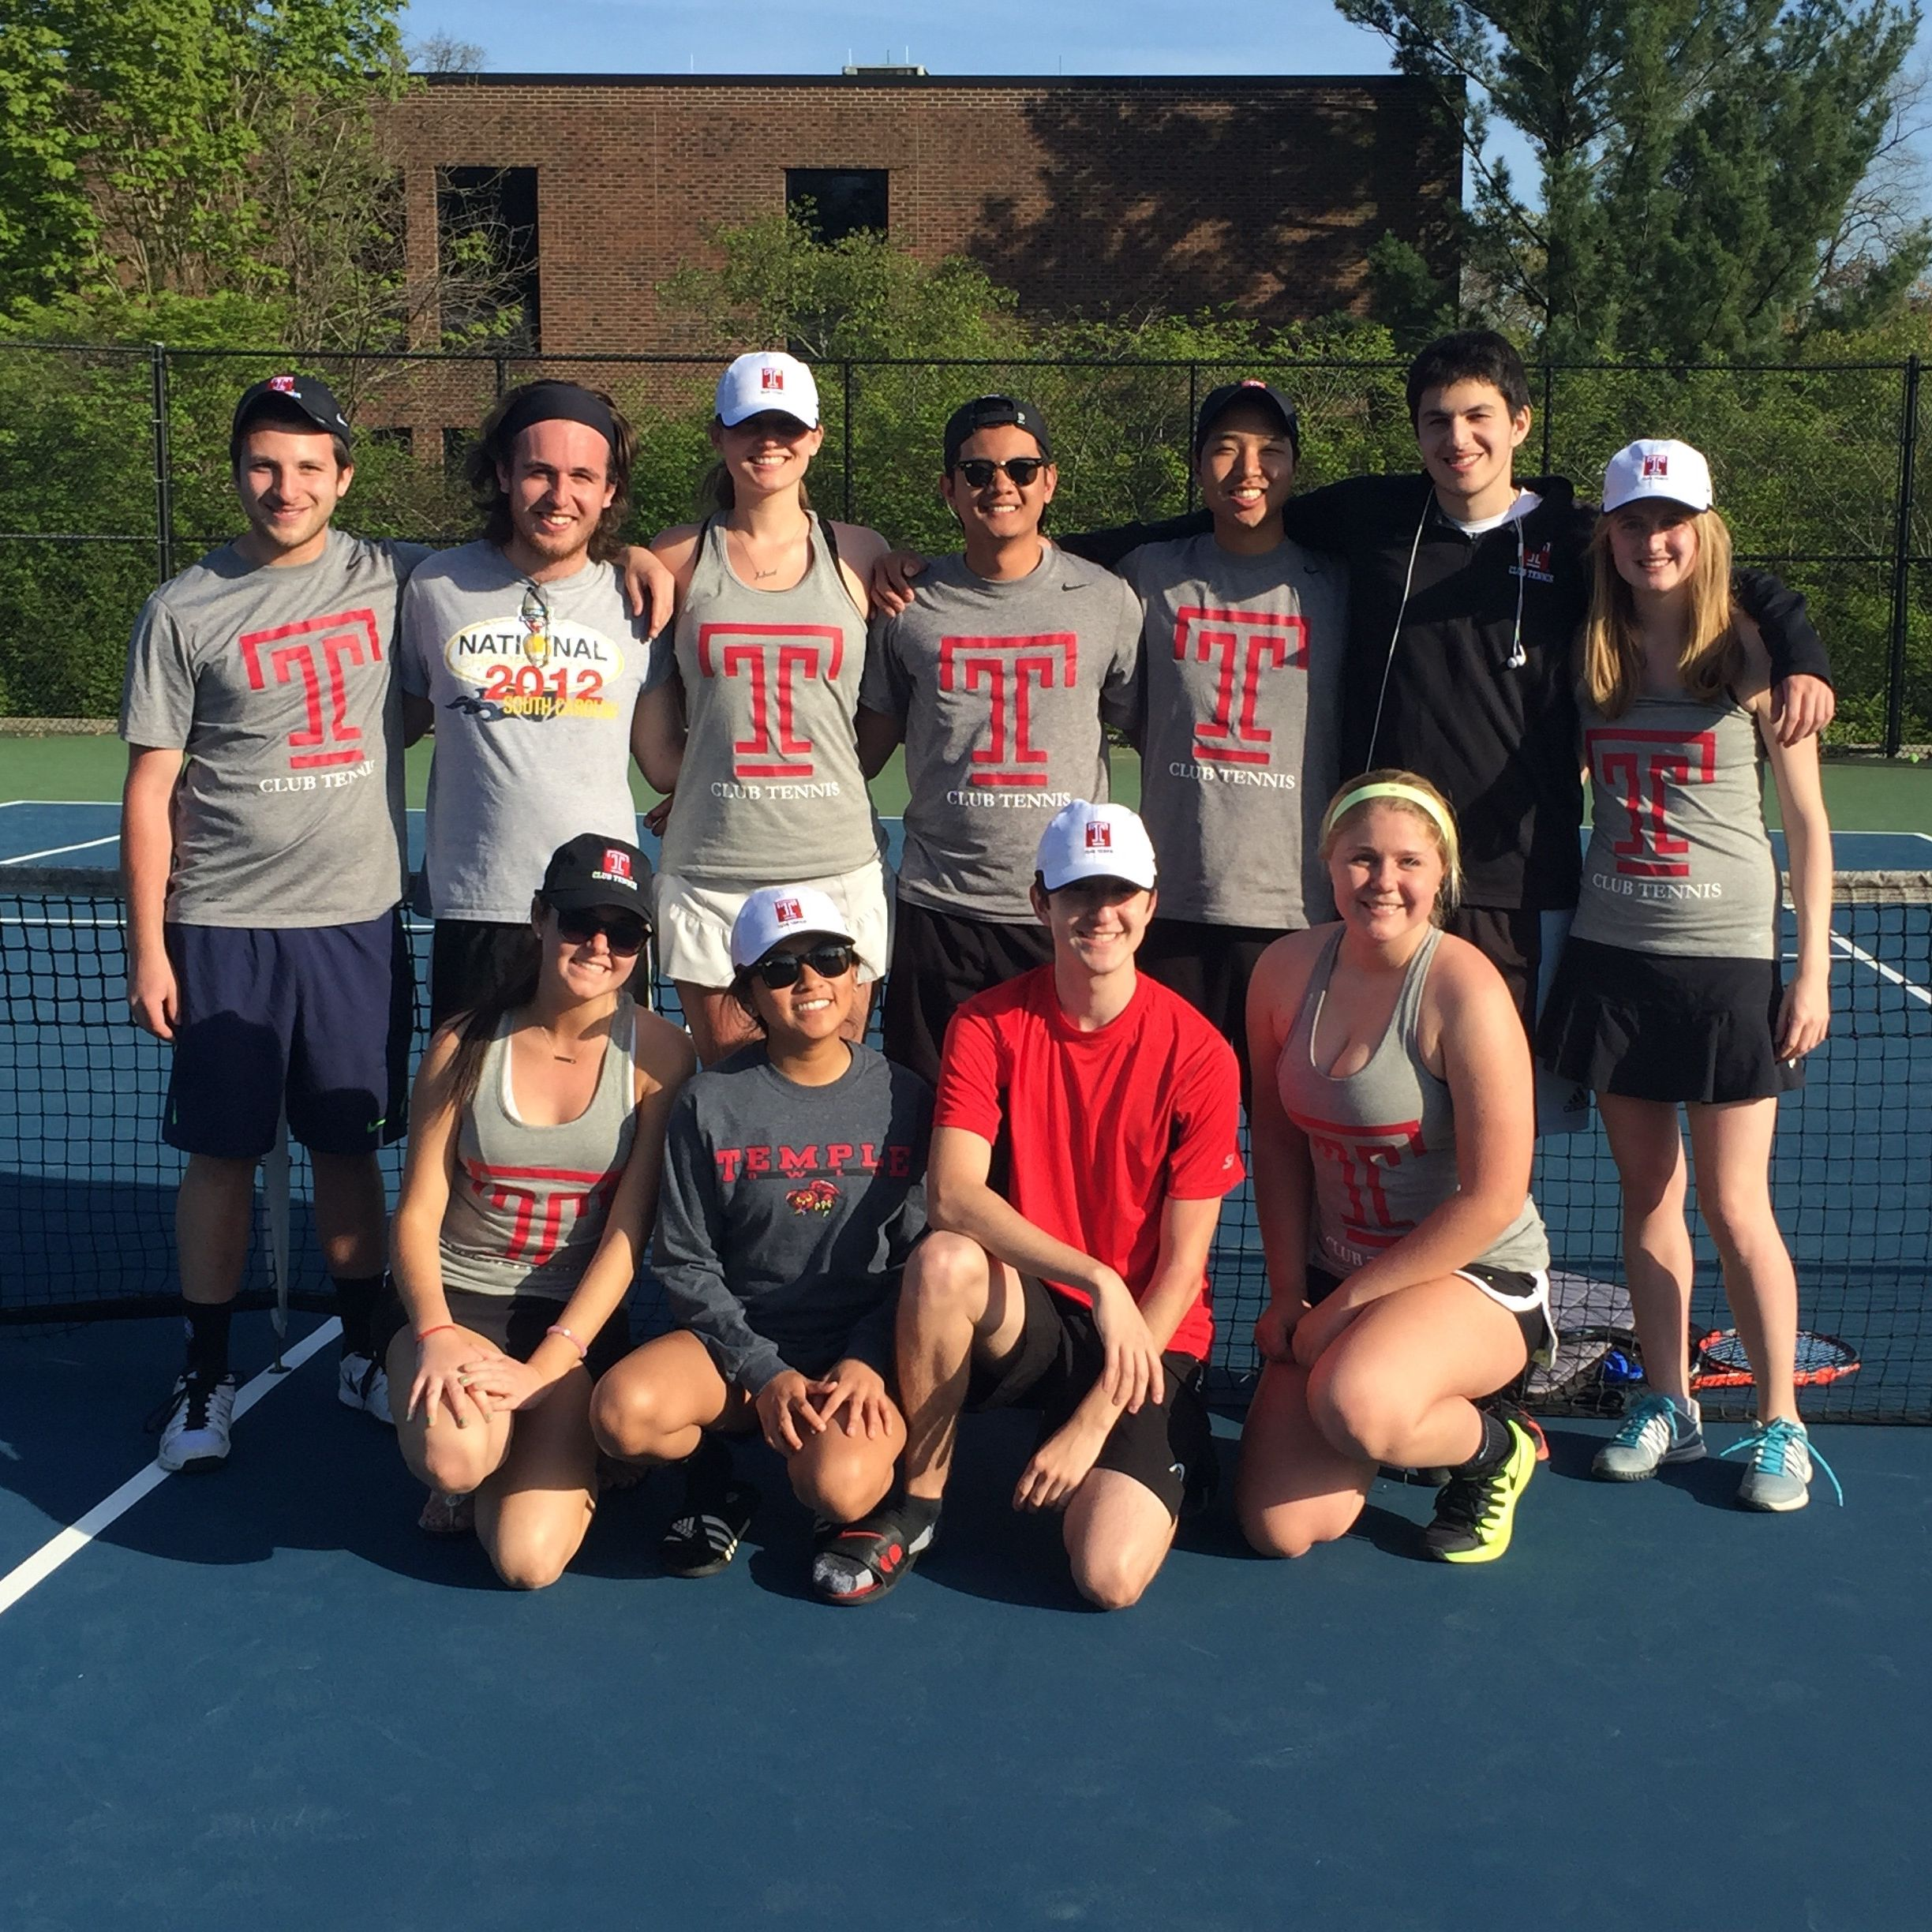 Temple University Tennis Club Team picture.